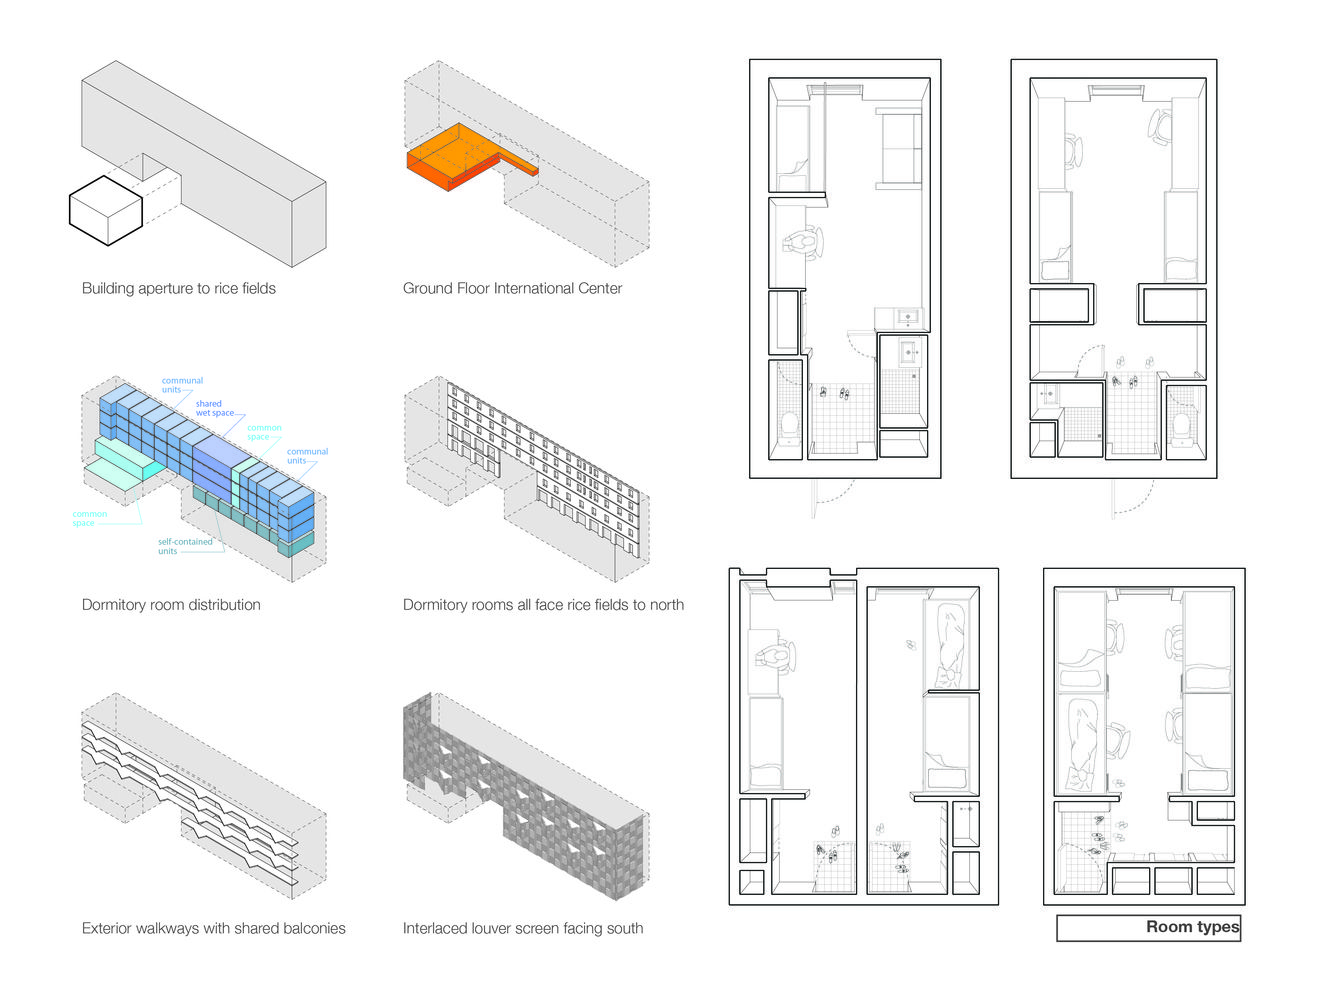 Gallery of ihouse dormitory studio sumo 22 sumo for Types of architectural design concepts